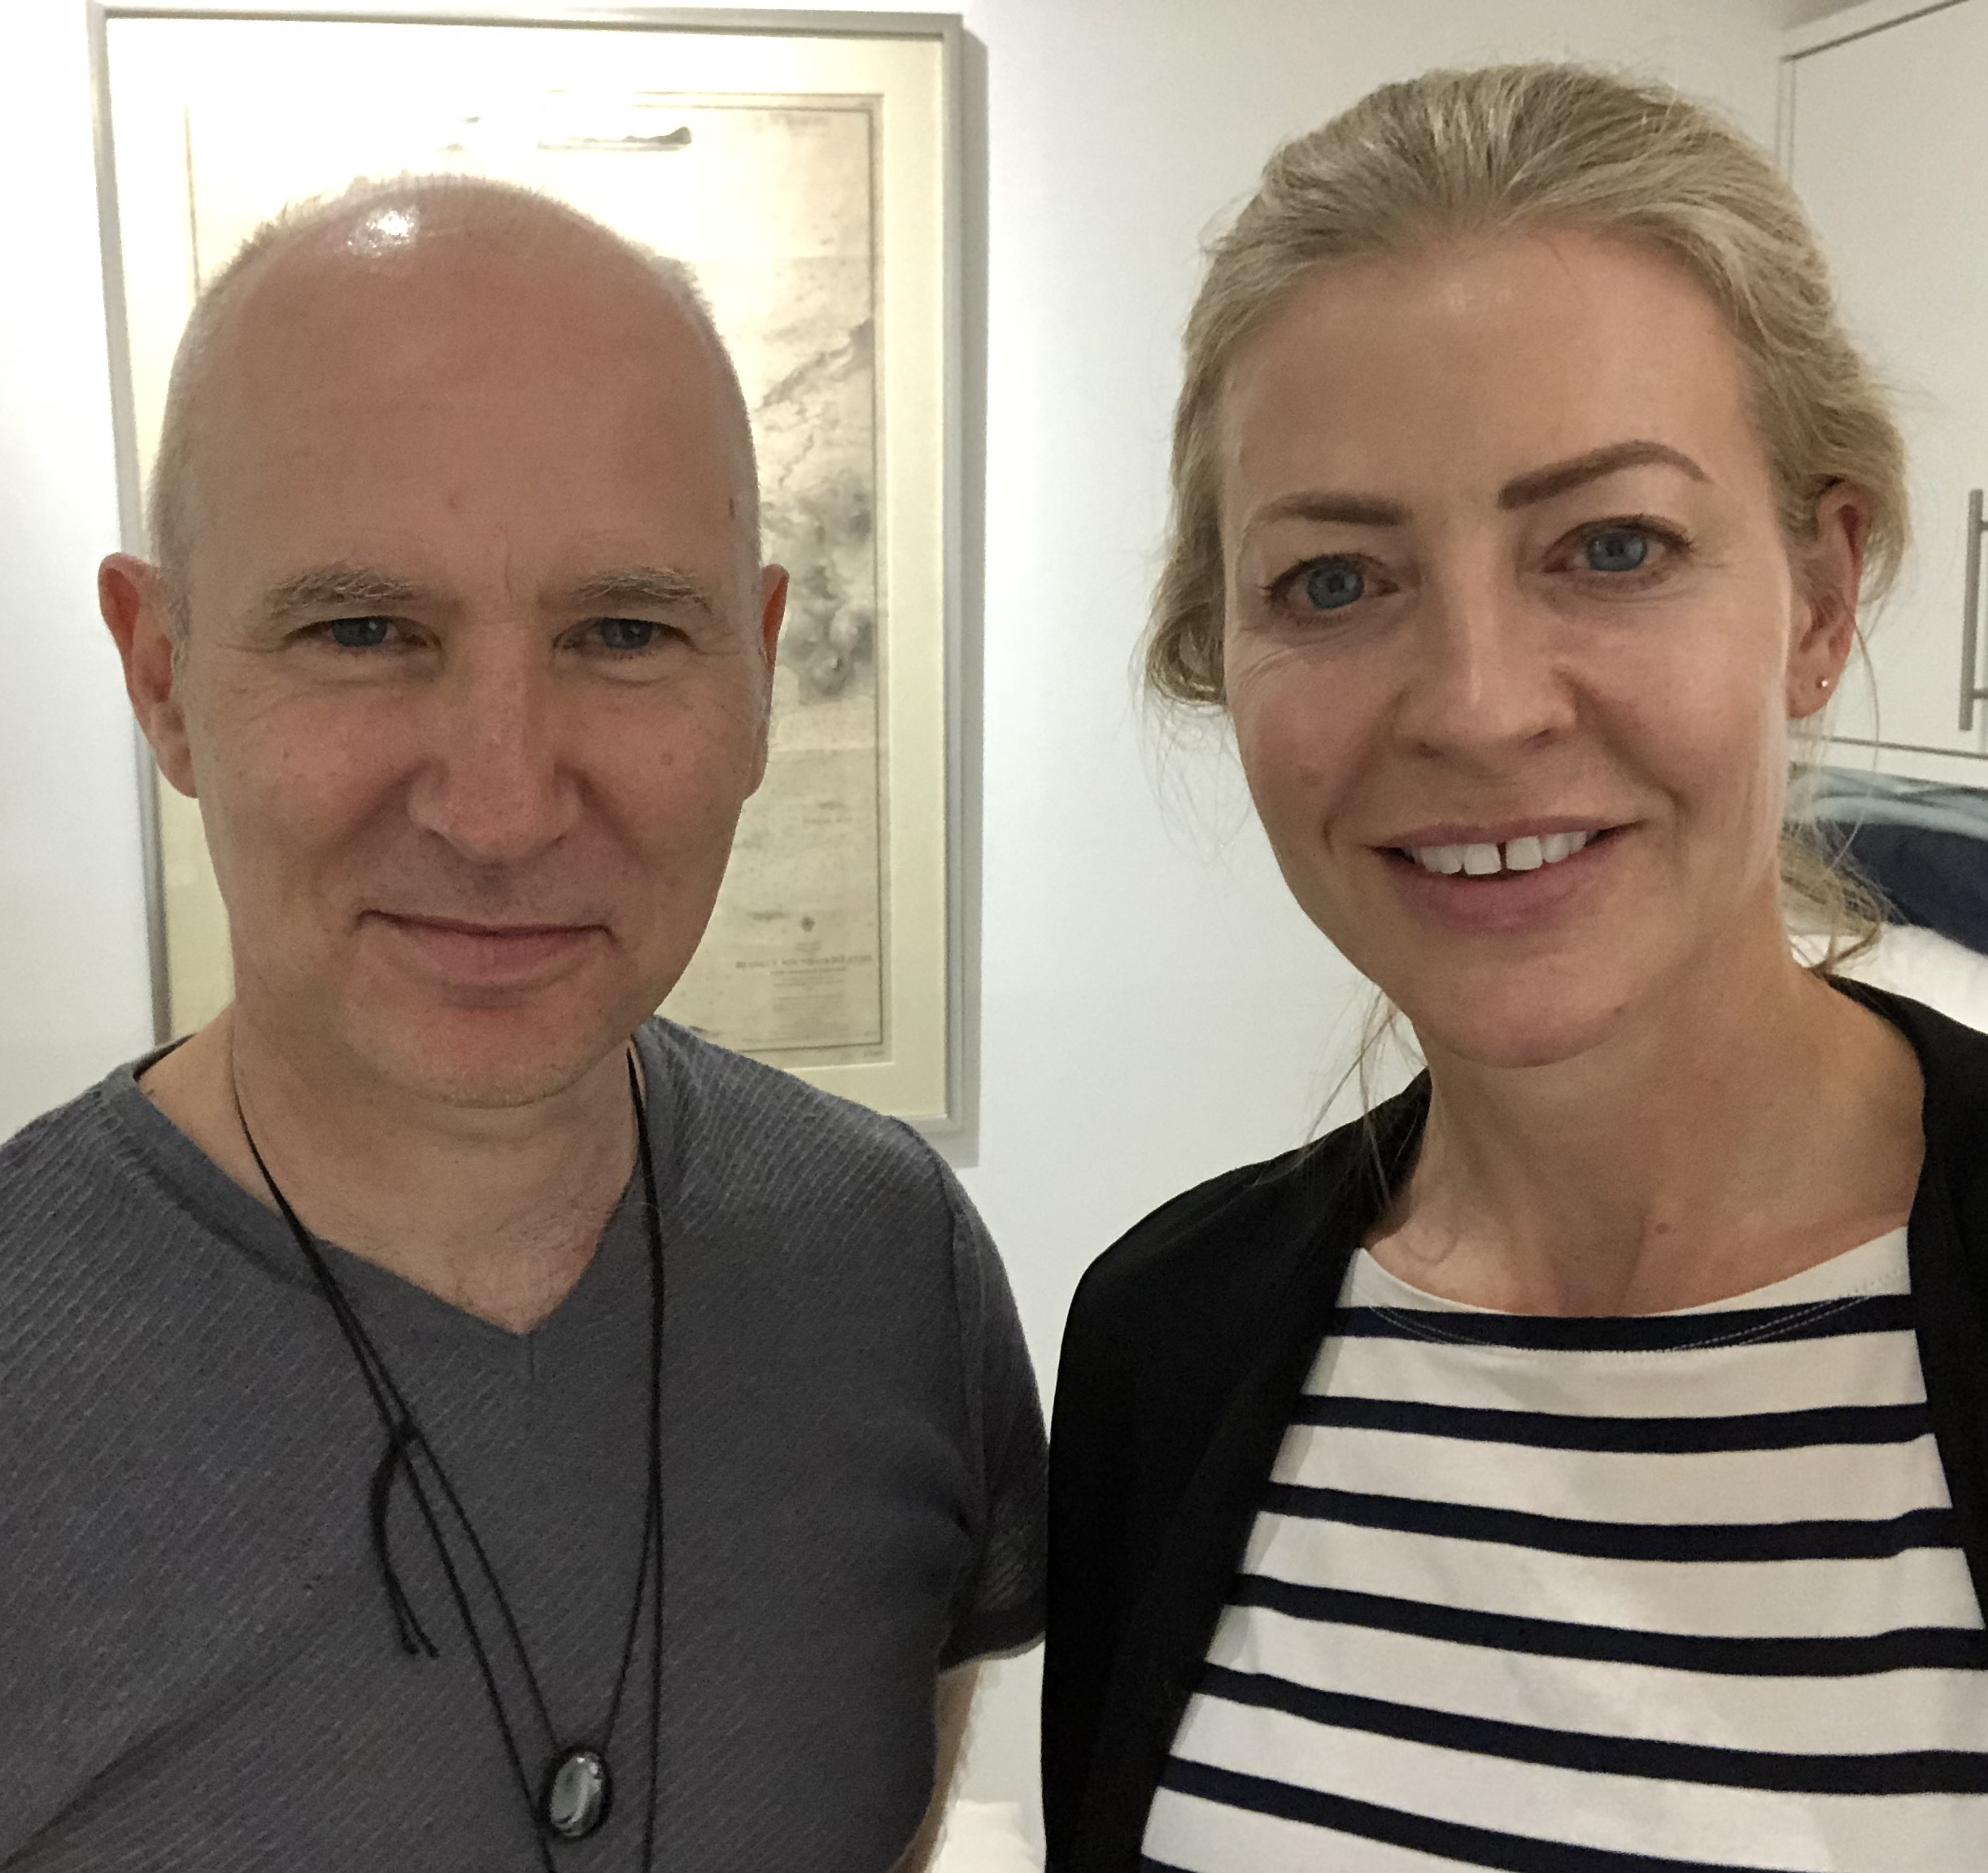 With Toby Aspin, the energy healer who can smooth your face without touching it